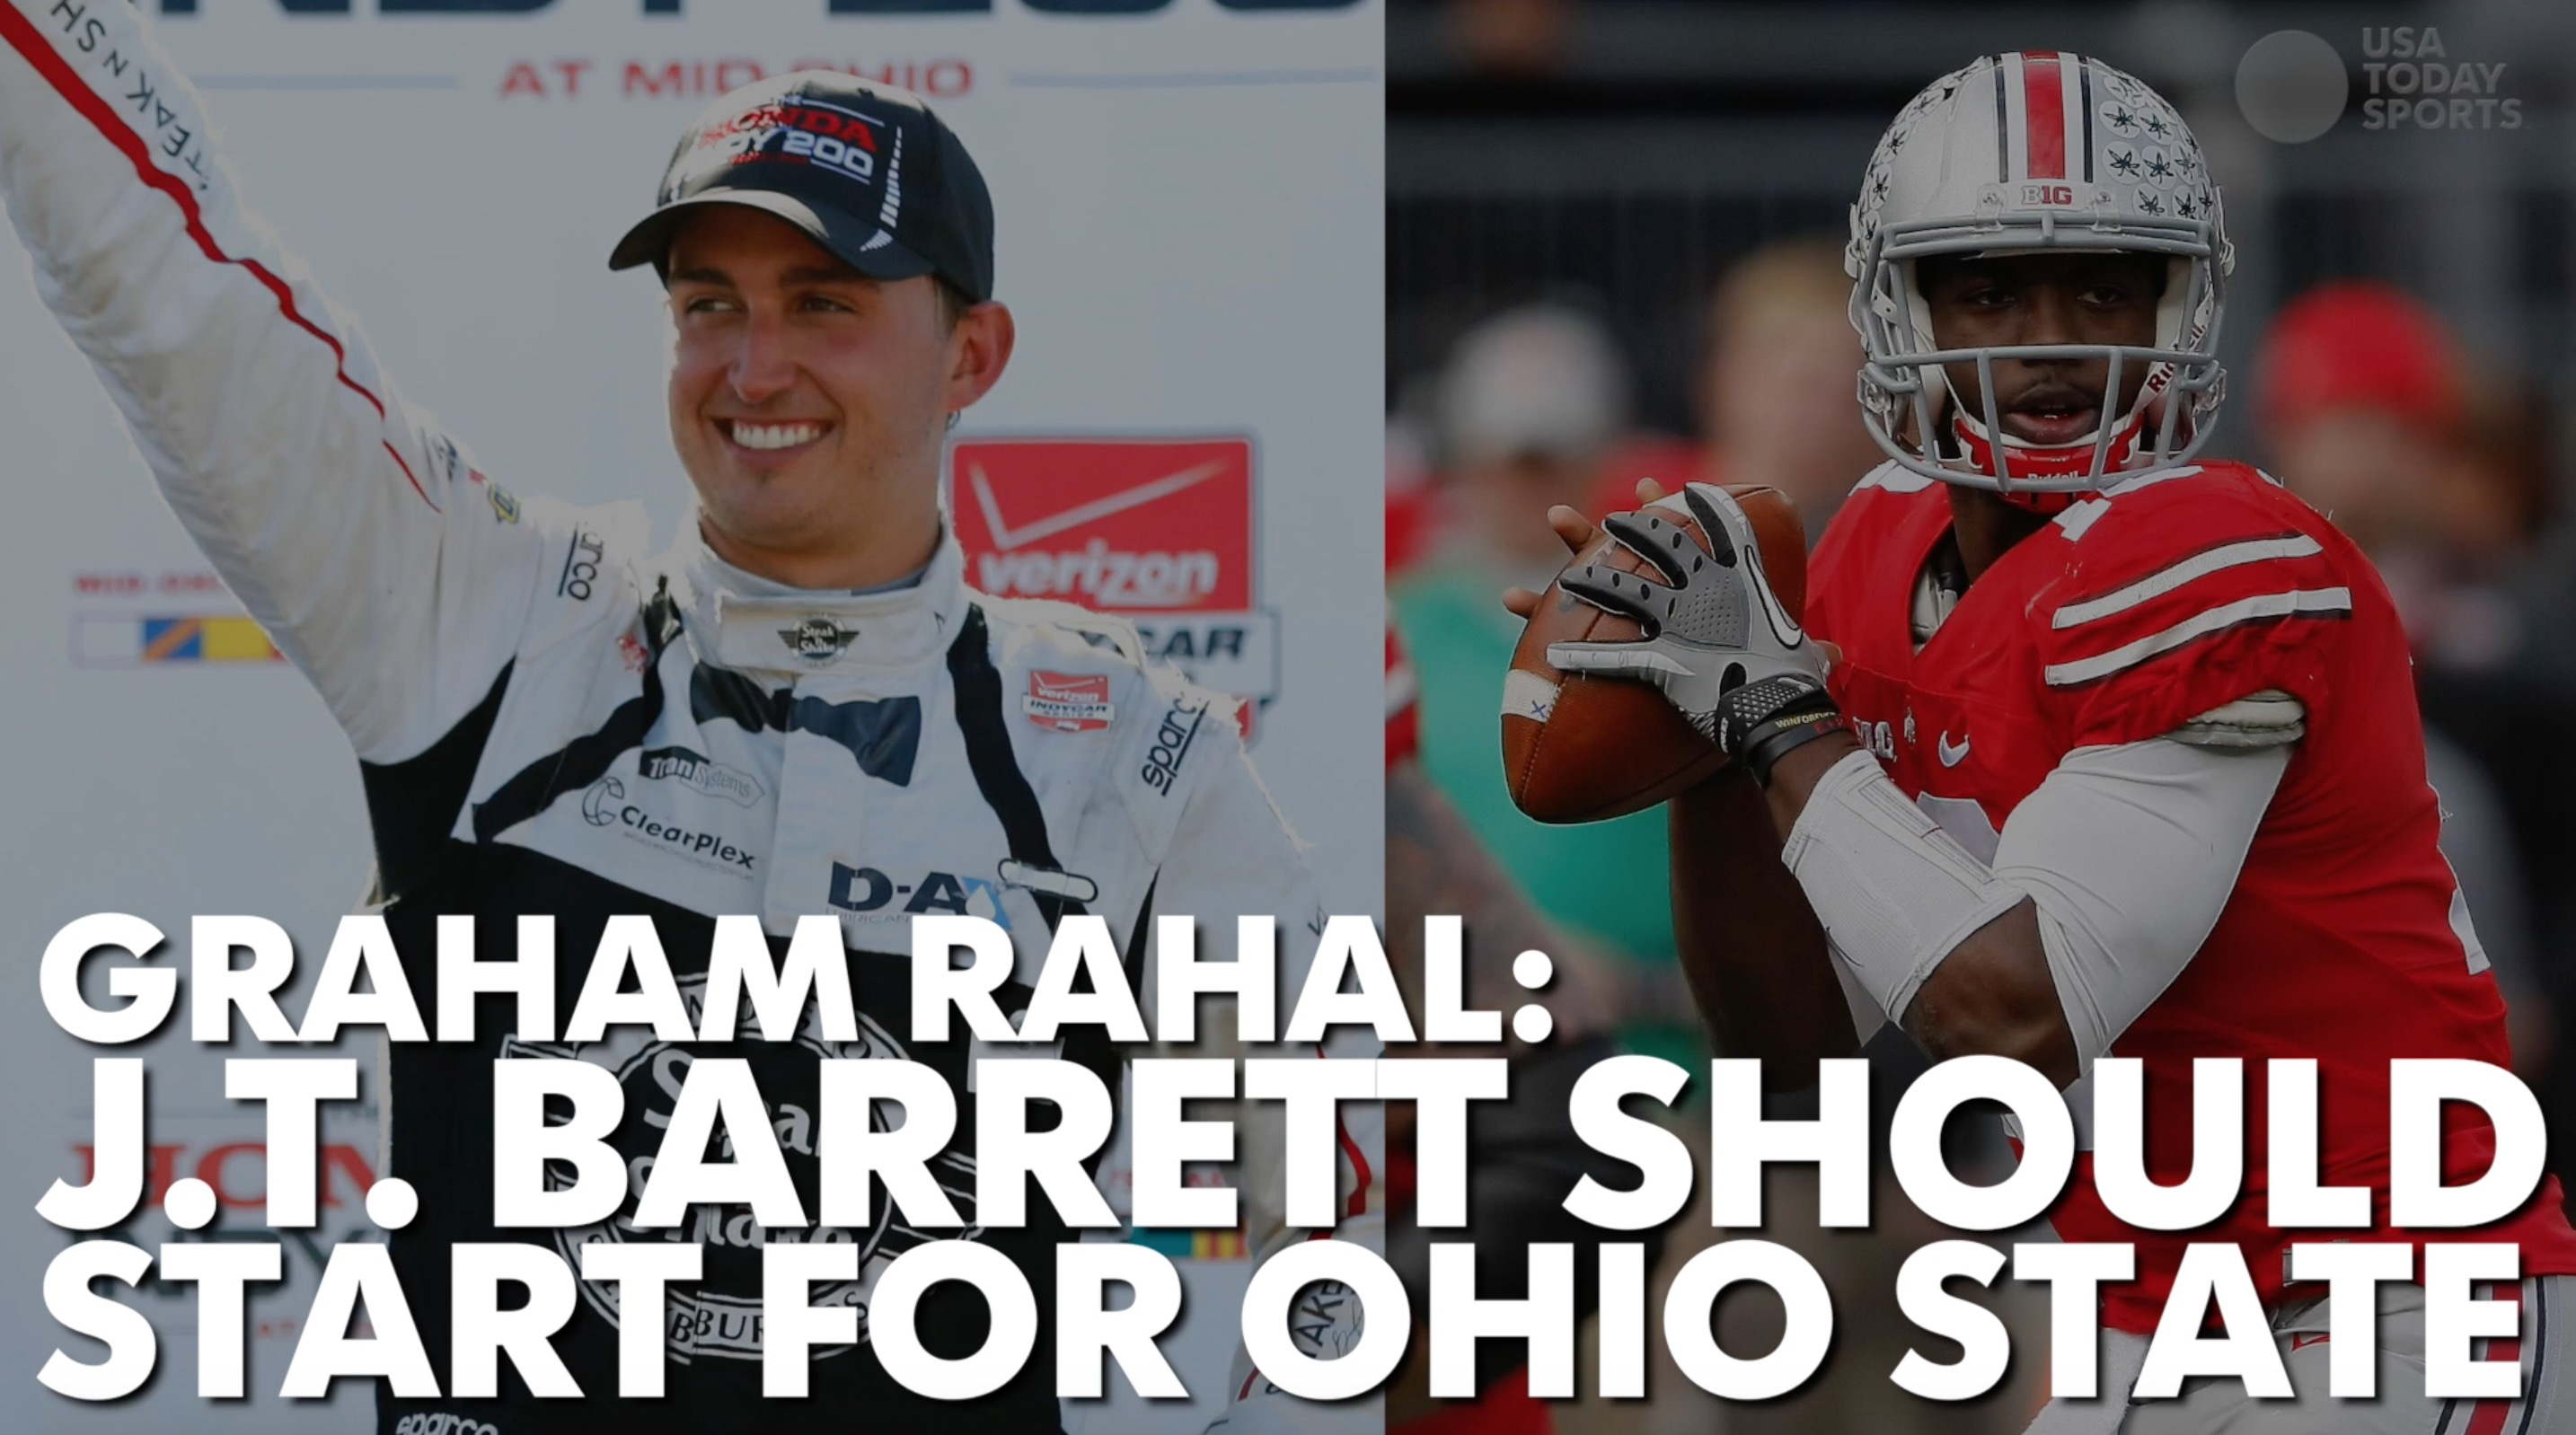 IndyCar's Graham Rahal thinks J.T. Barrett should start for Ohio State.